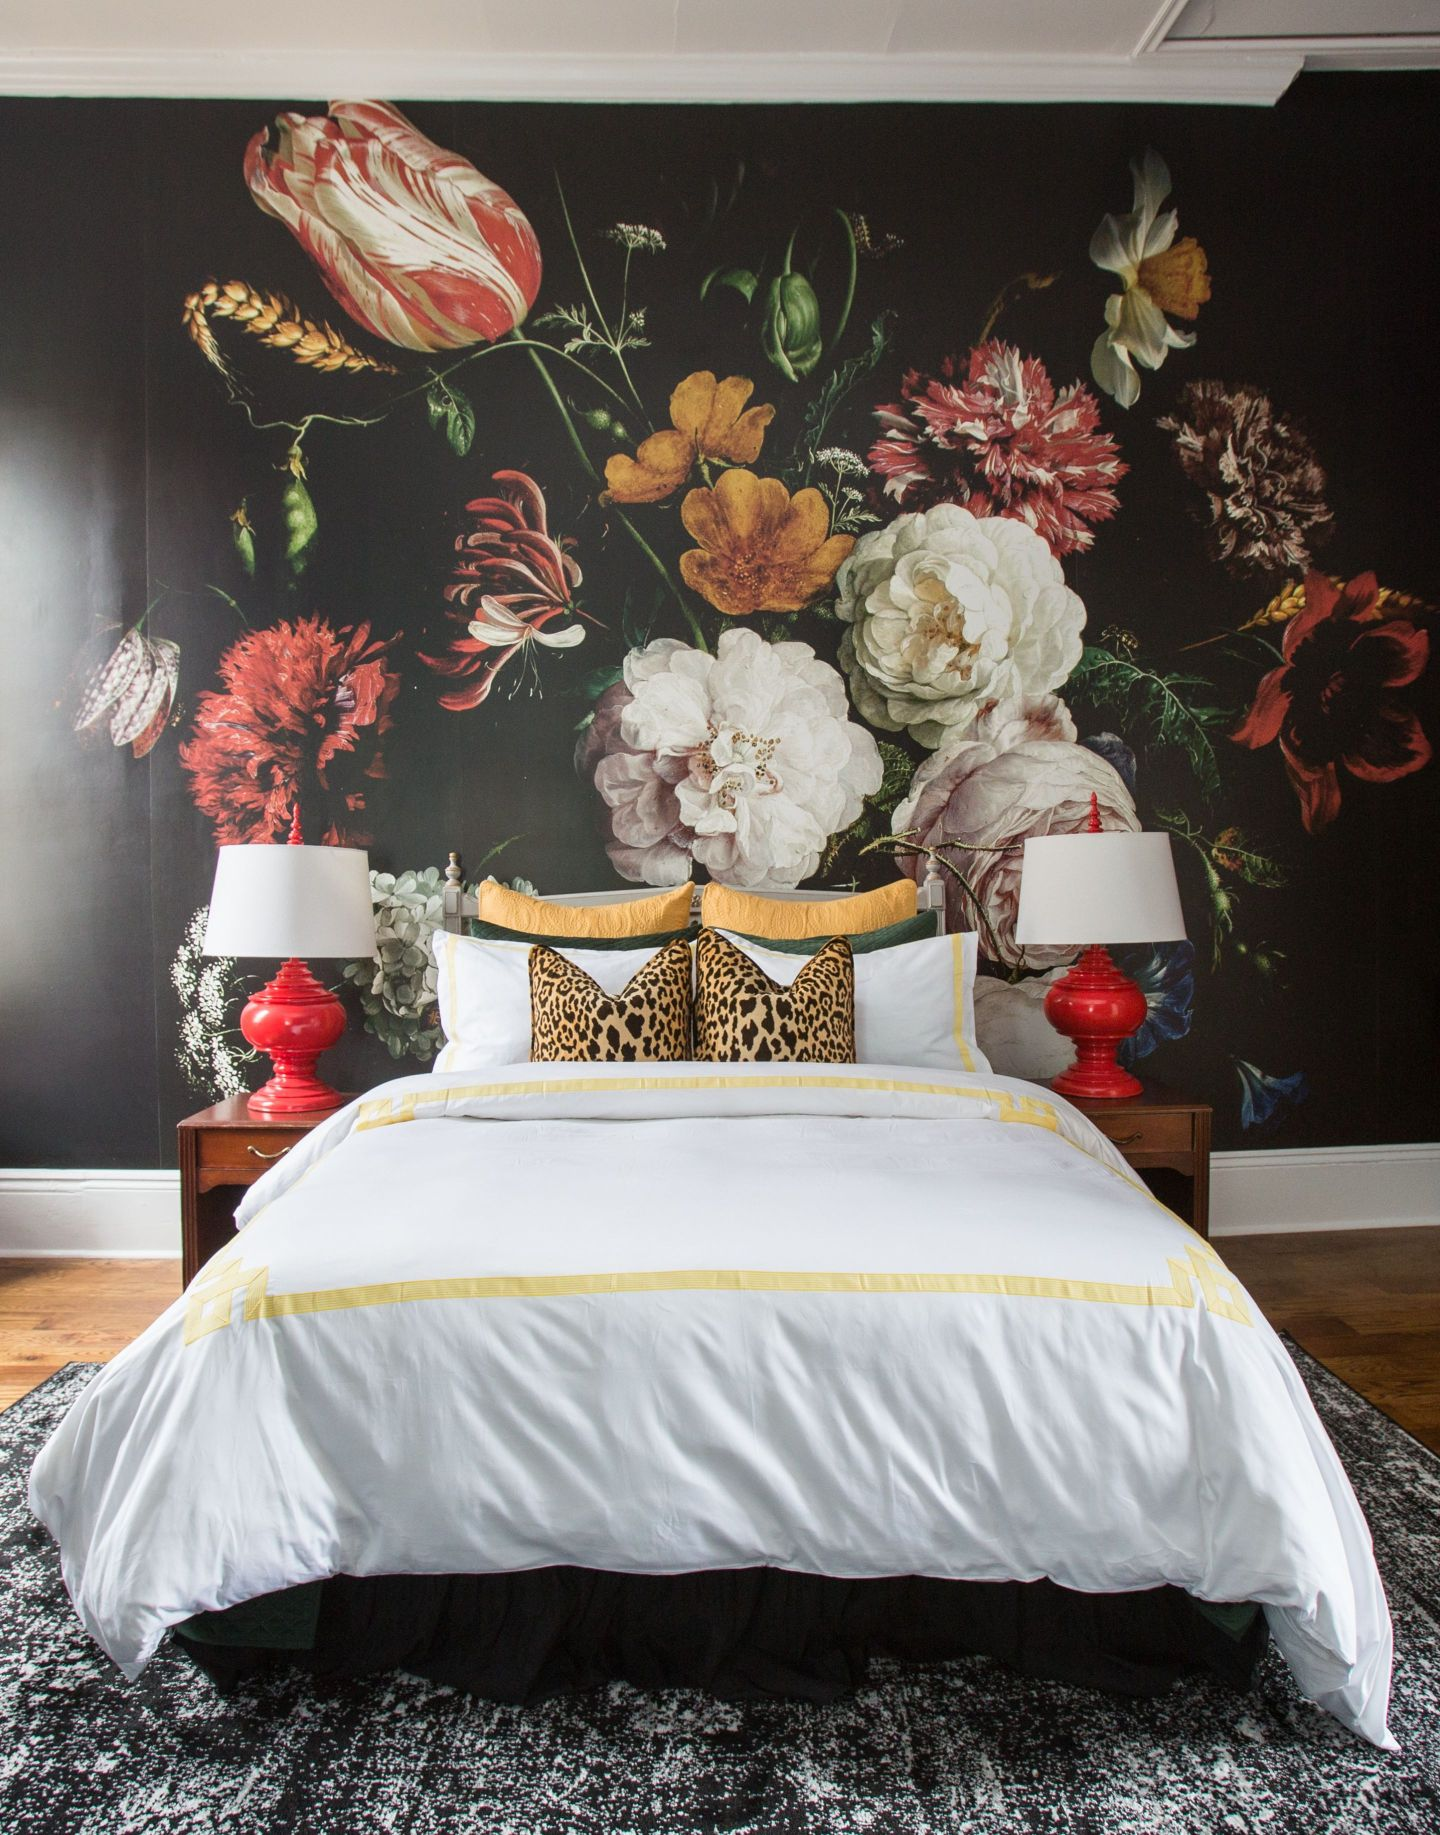 FLORAL-BIG-CROP-1440x1835 From Rocket Science to Interior Design: Baton Rouge Roots and Bold Design from April Vogt